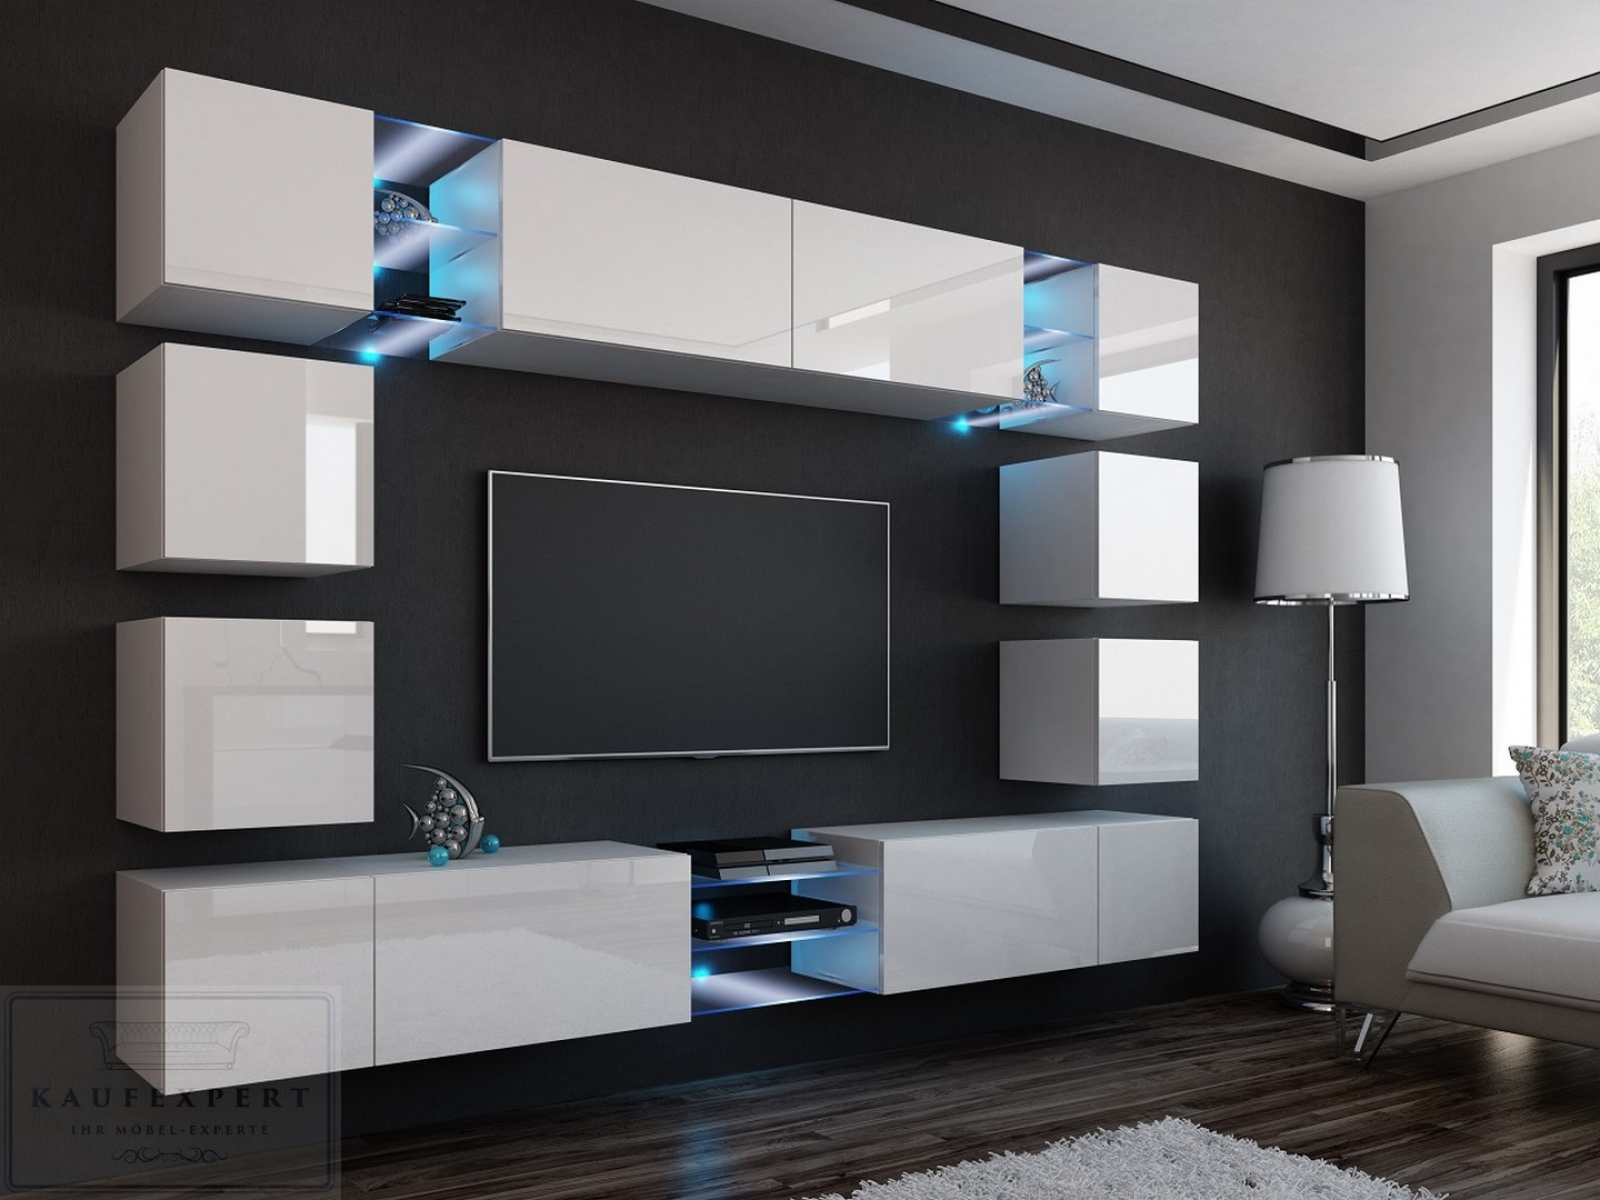 kaufexpert wohnwand edge wei hochglanz wei mediawand medienwand design modern led. Black Bedroom Furniture Sets. Home Design Ideas